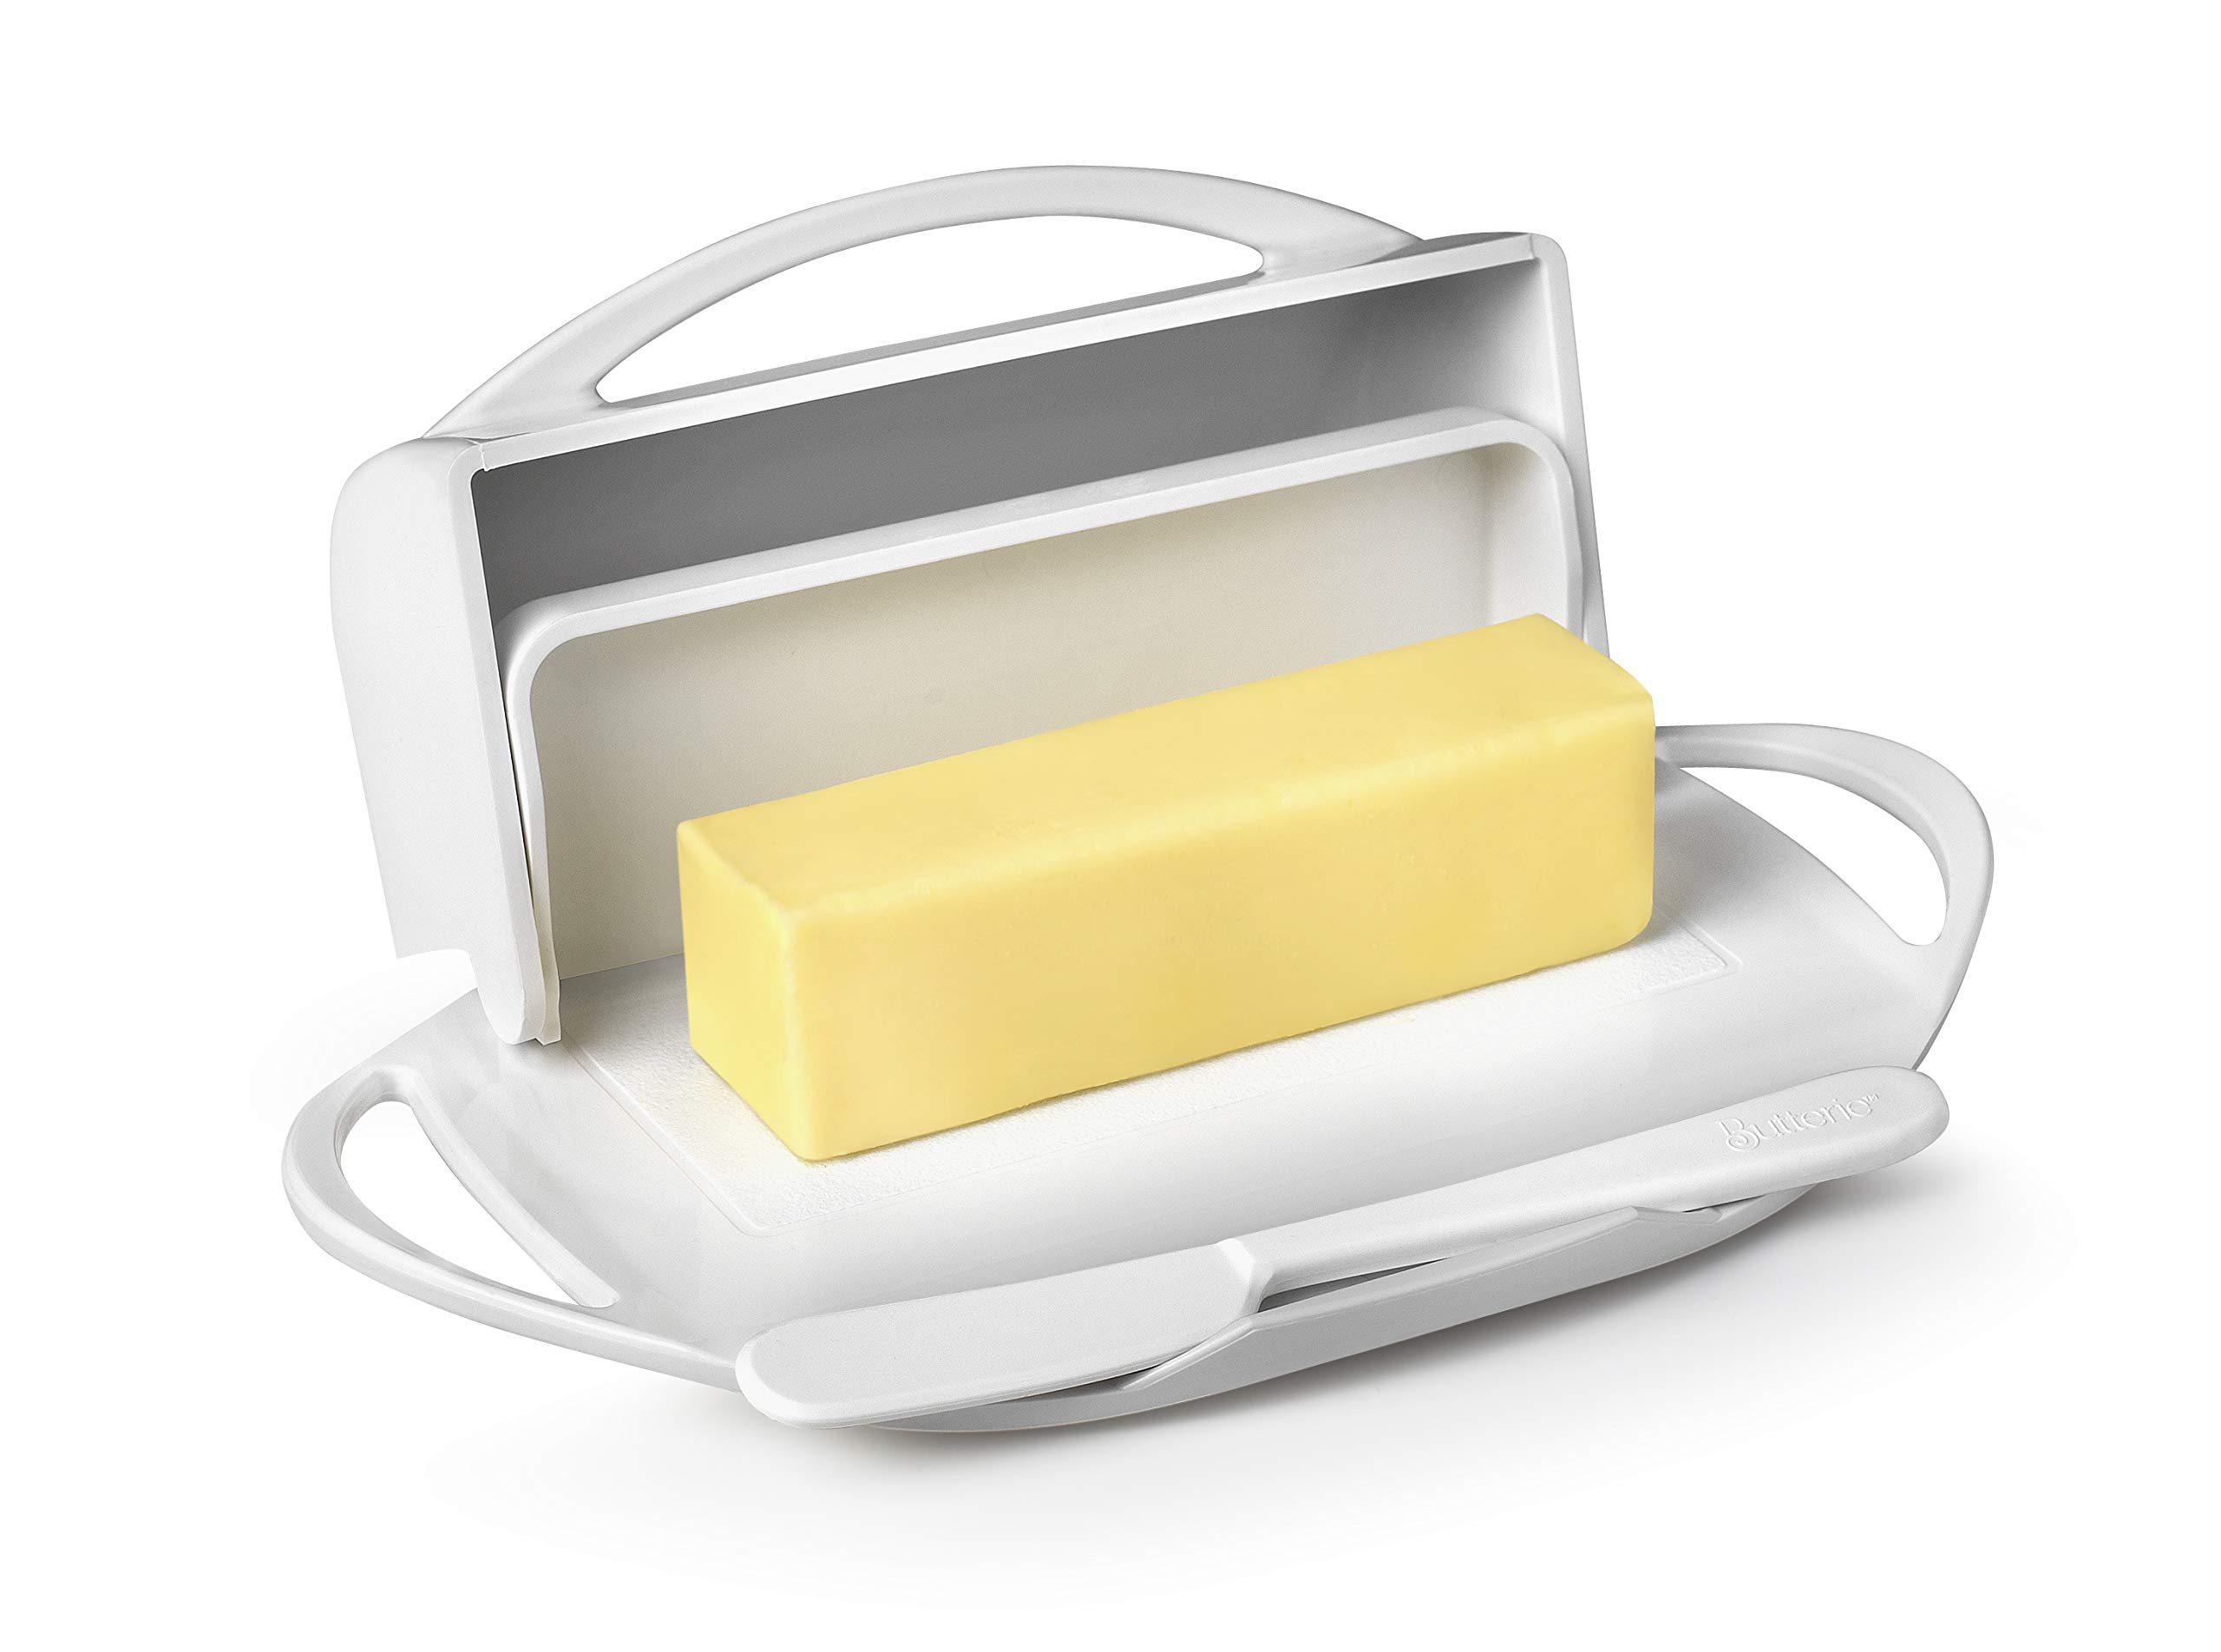 Butterie Flip-Top Butter Dish with Matching Spreader by Butterie (Image #1)